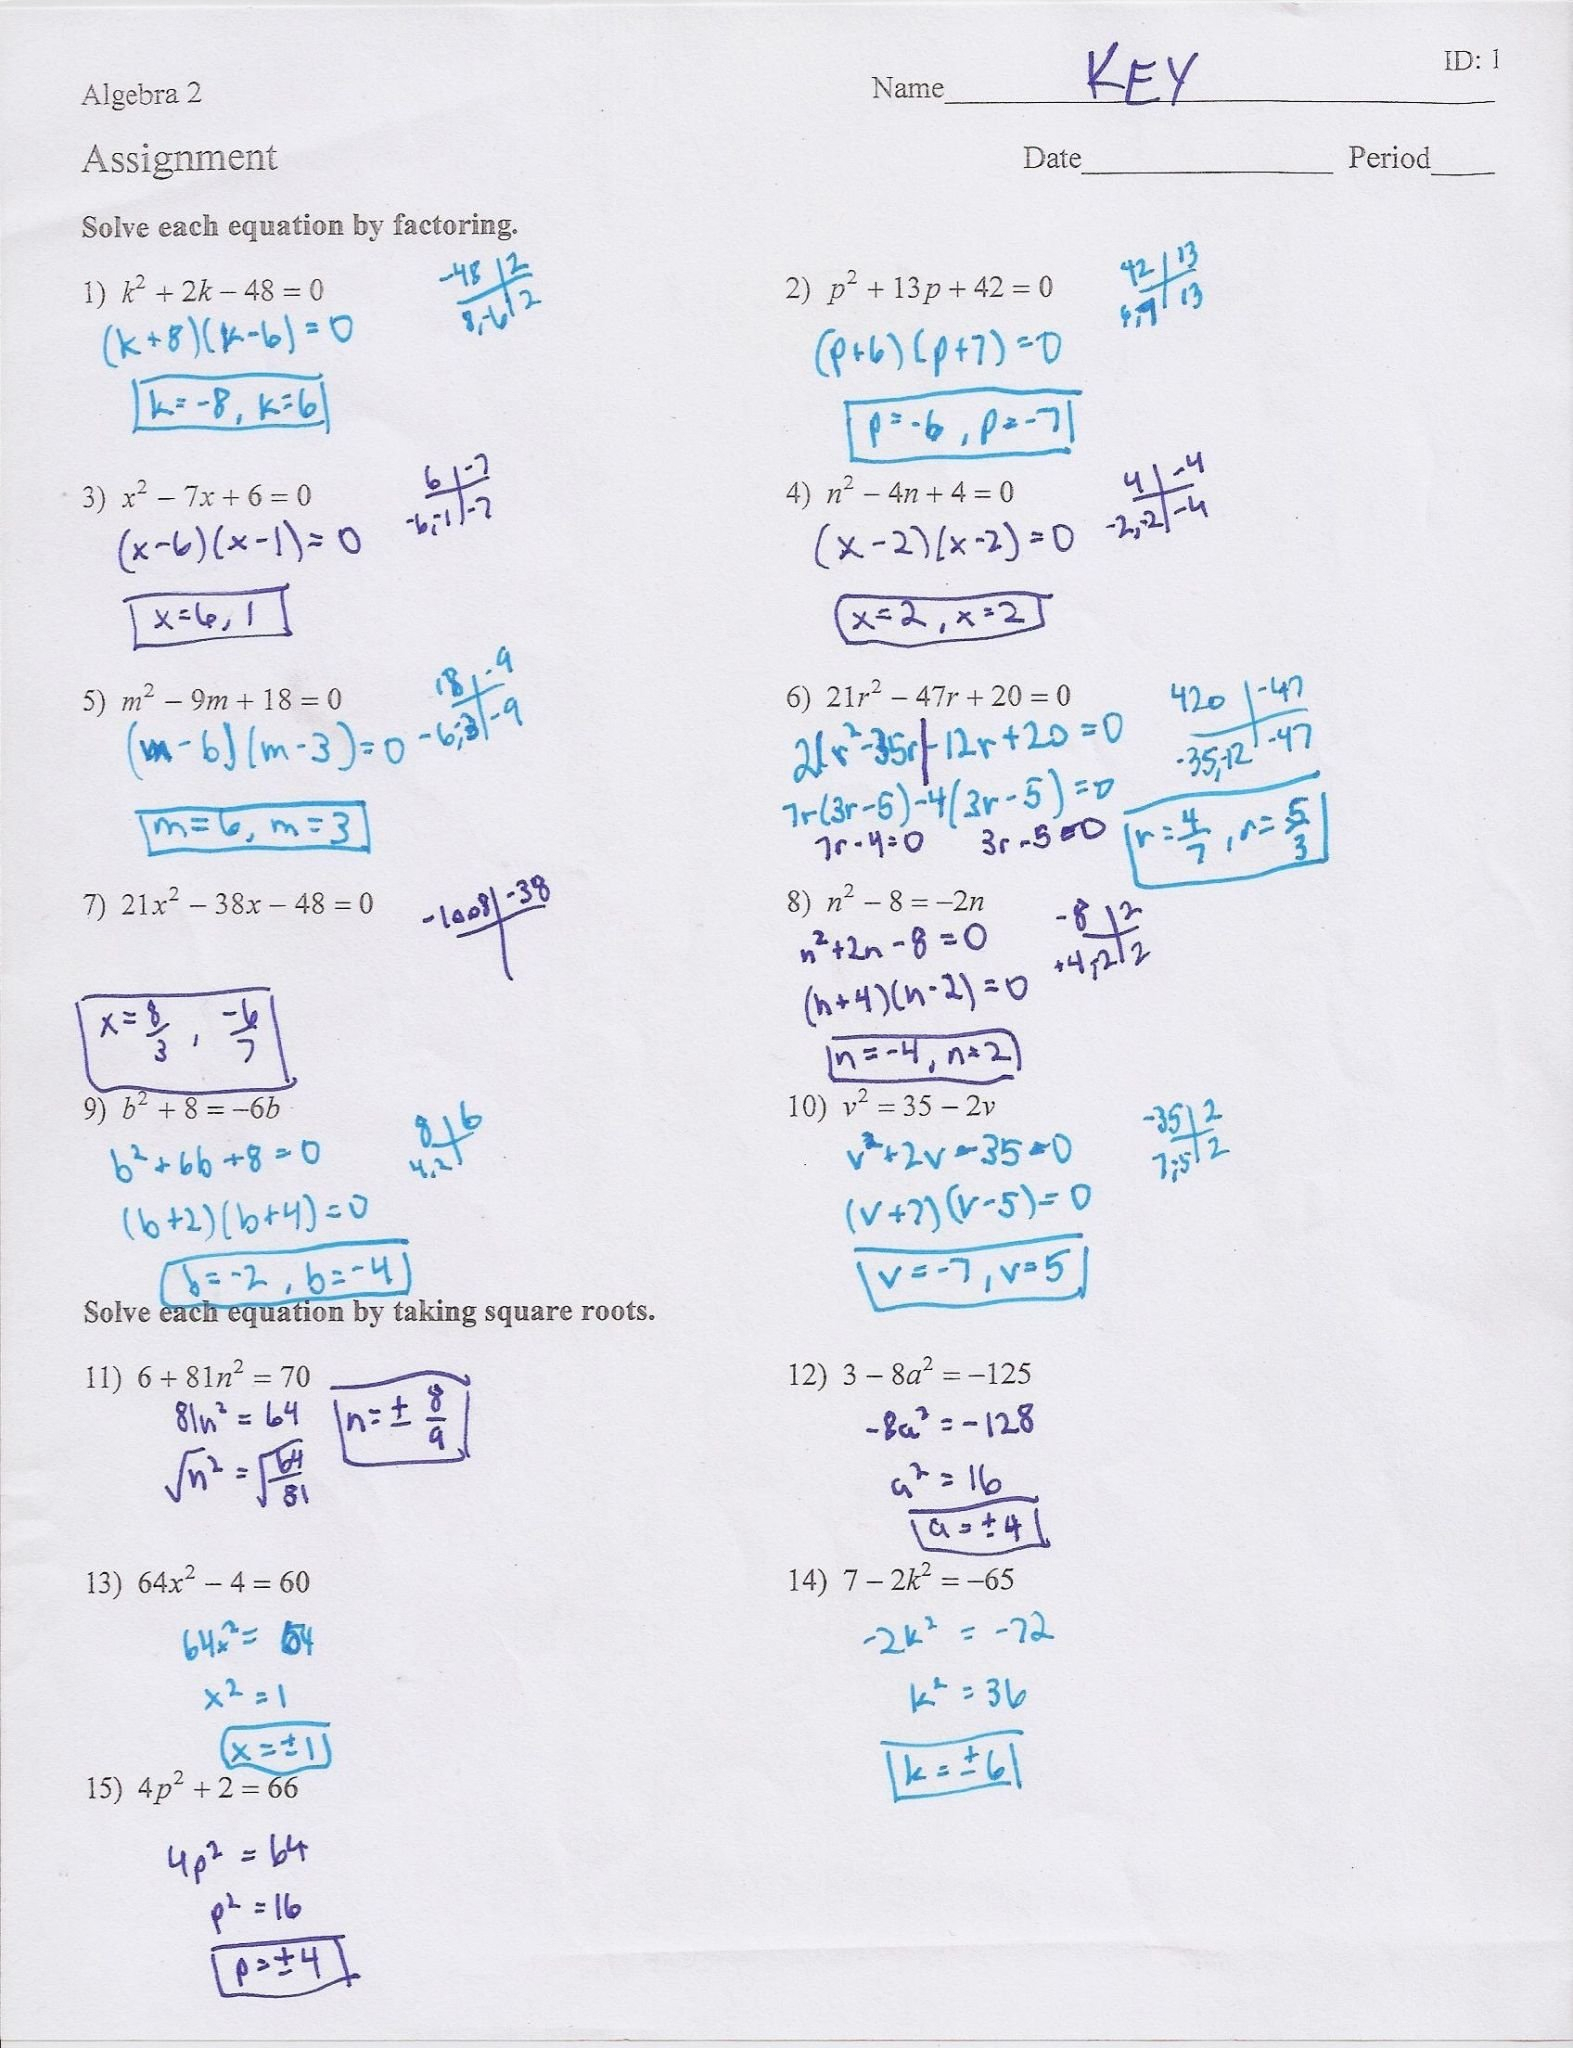 Quadratic Equations Worksheet With Solutions | Printable